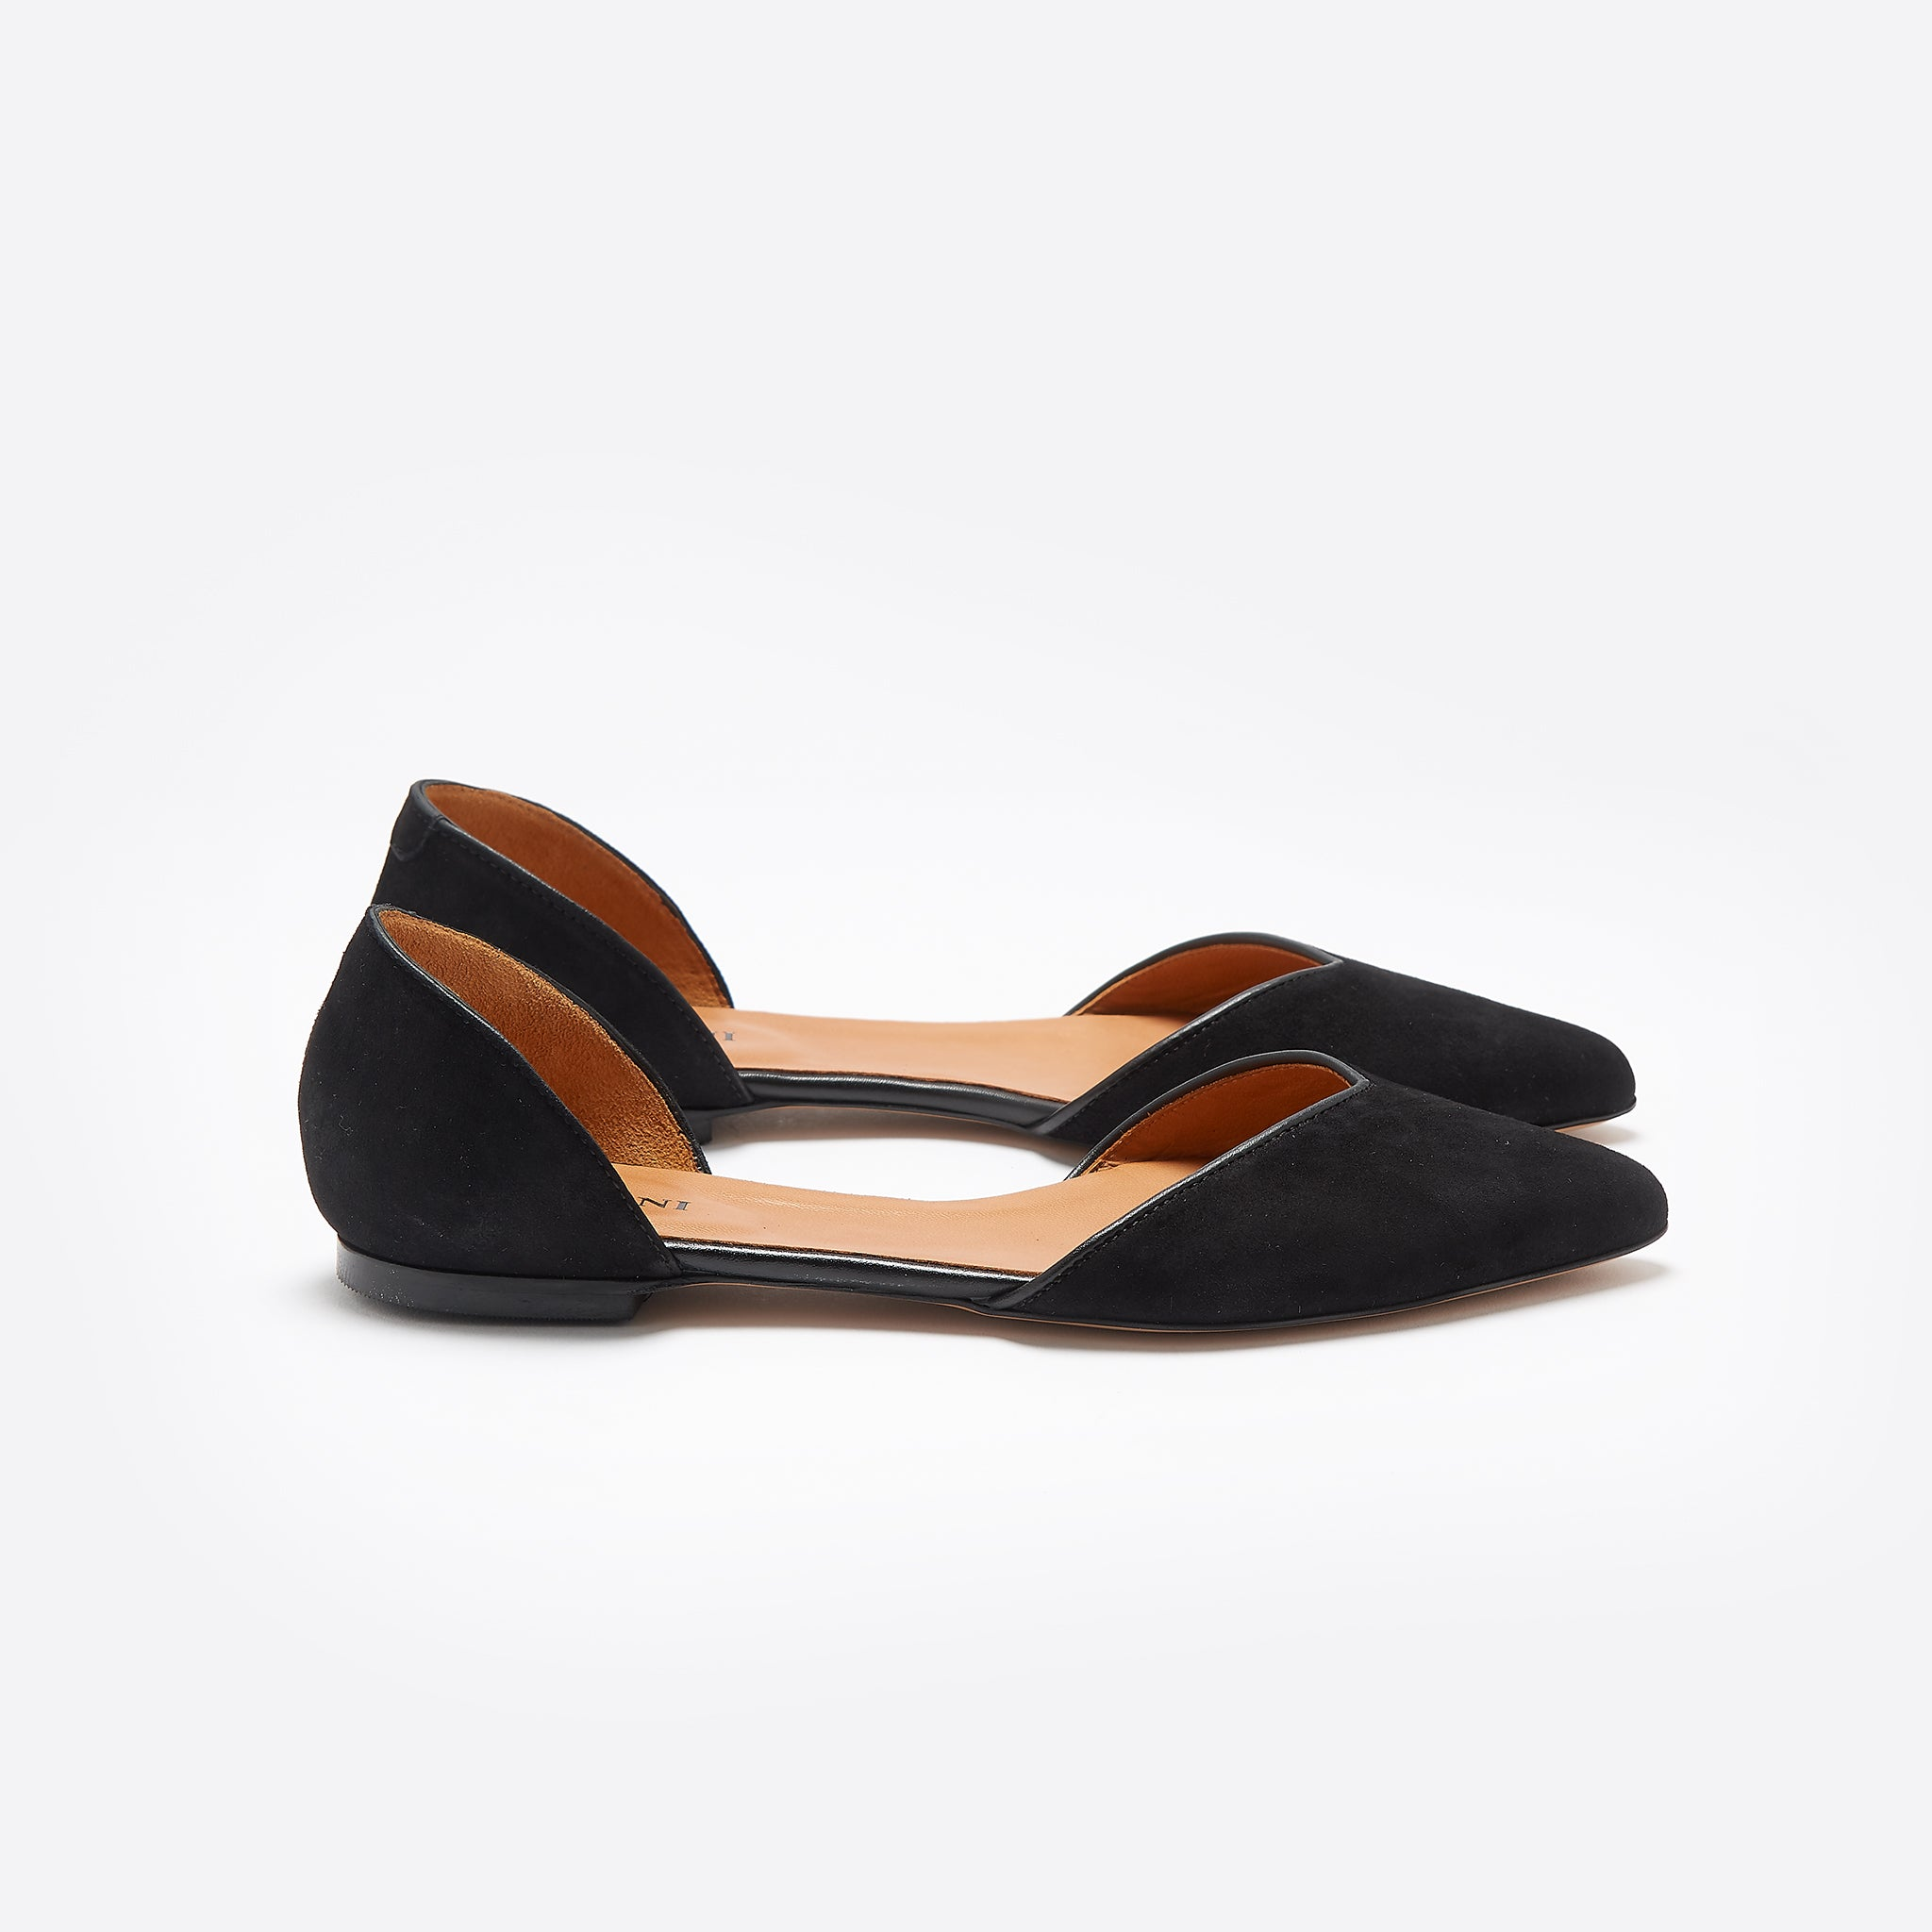 Ganni Karen Flat In Black Our Daily Edit Inside Heels Khaky 37